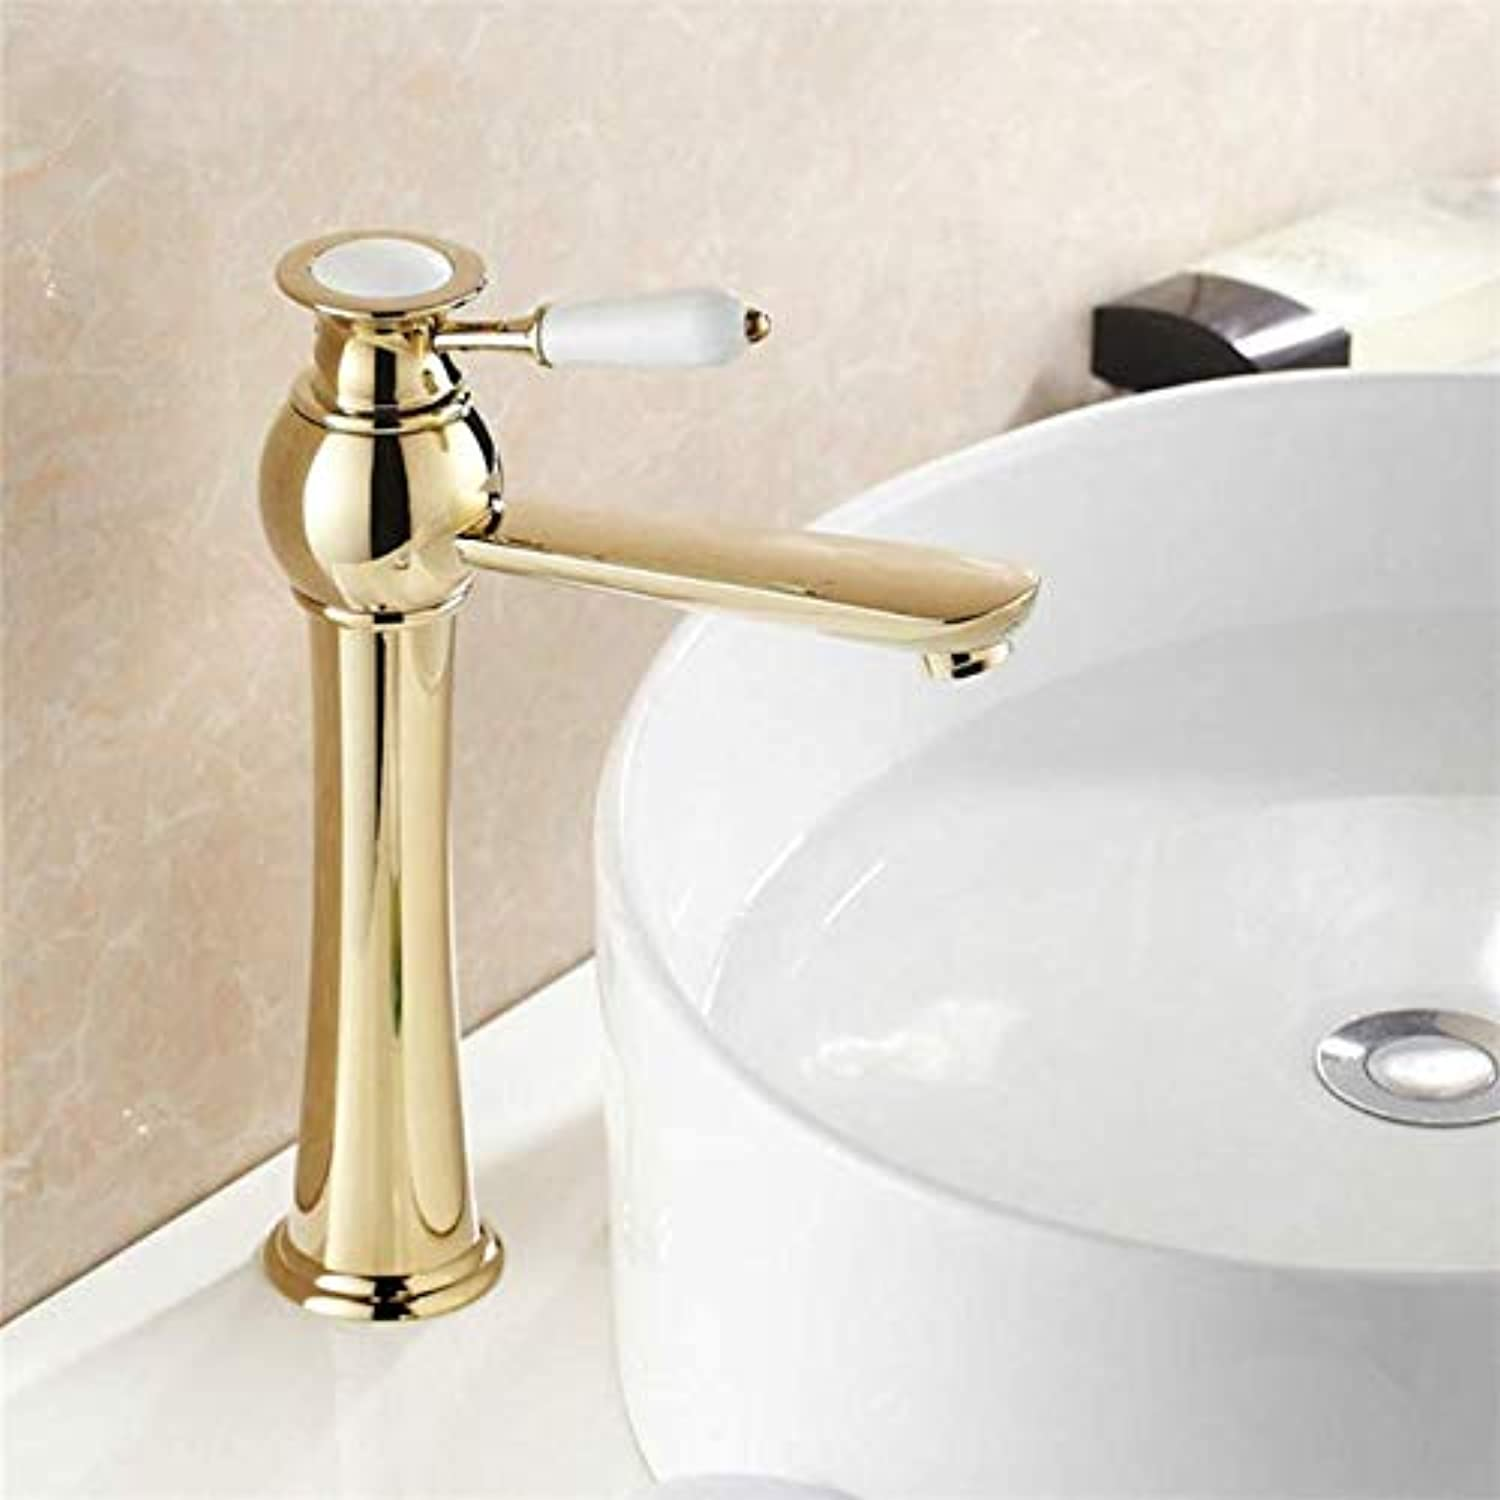 Stunning Luxury Bathroom Basin Faucet Brass Basin Toilet Faucet gold Polished Bar Faucet